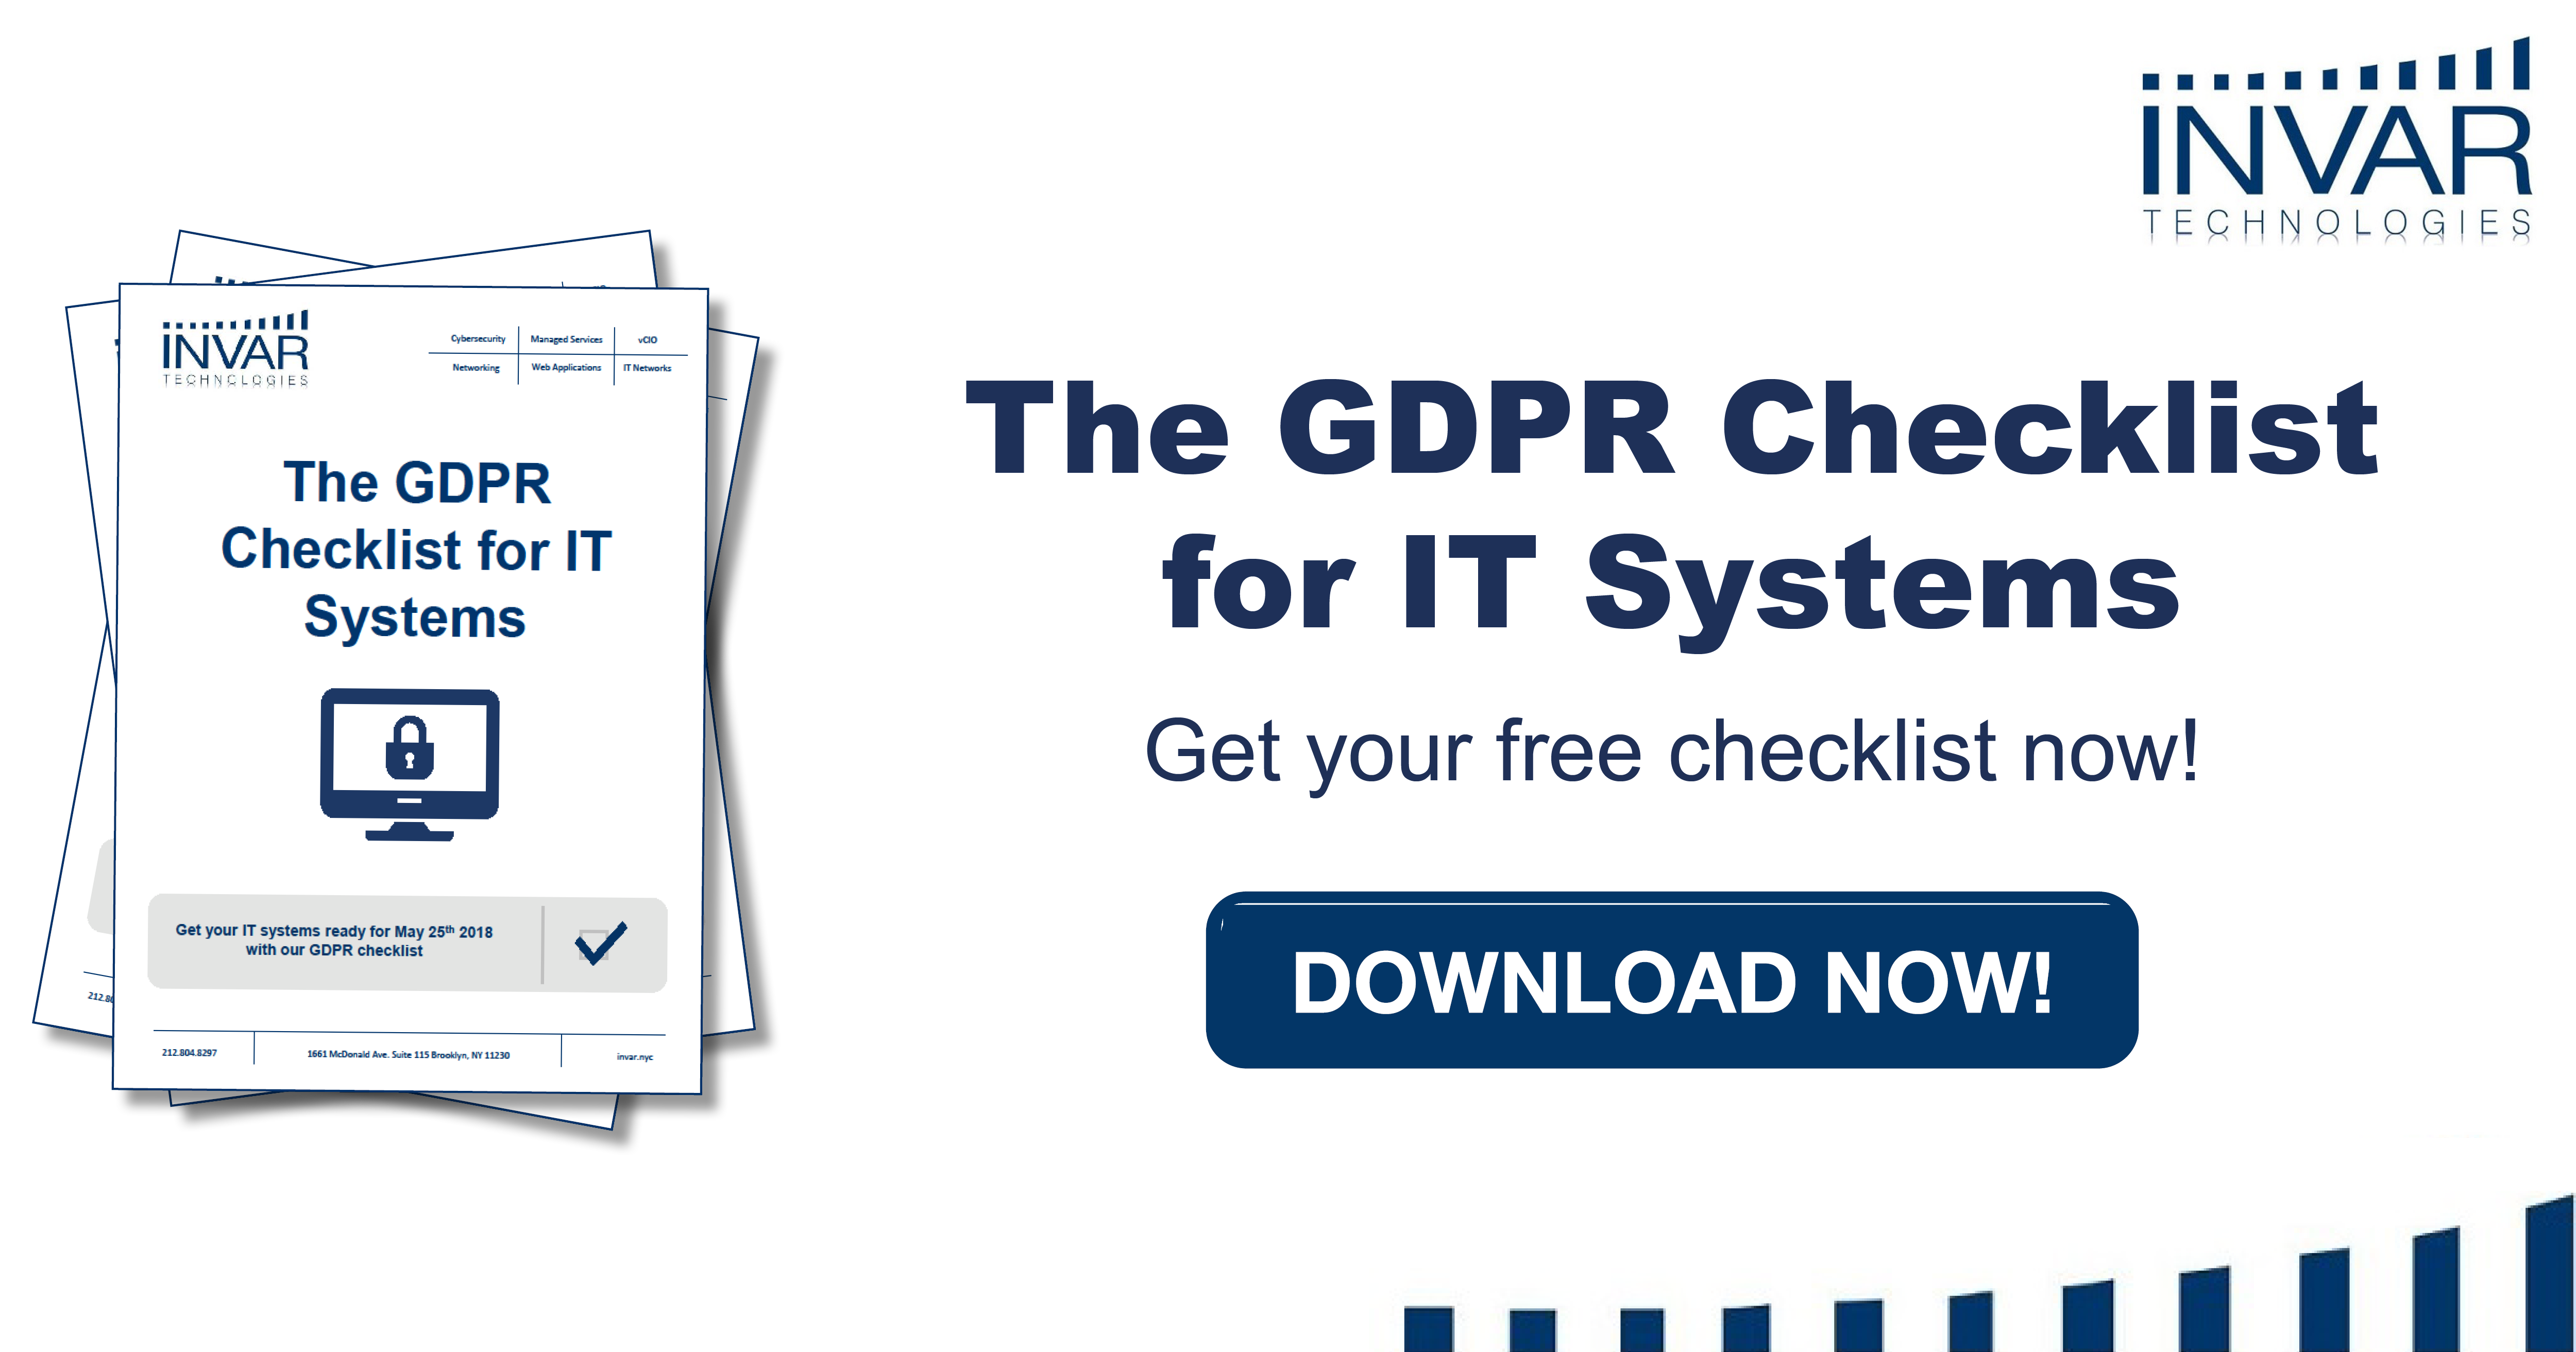 The GDPR checklist for IT systems